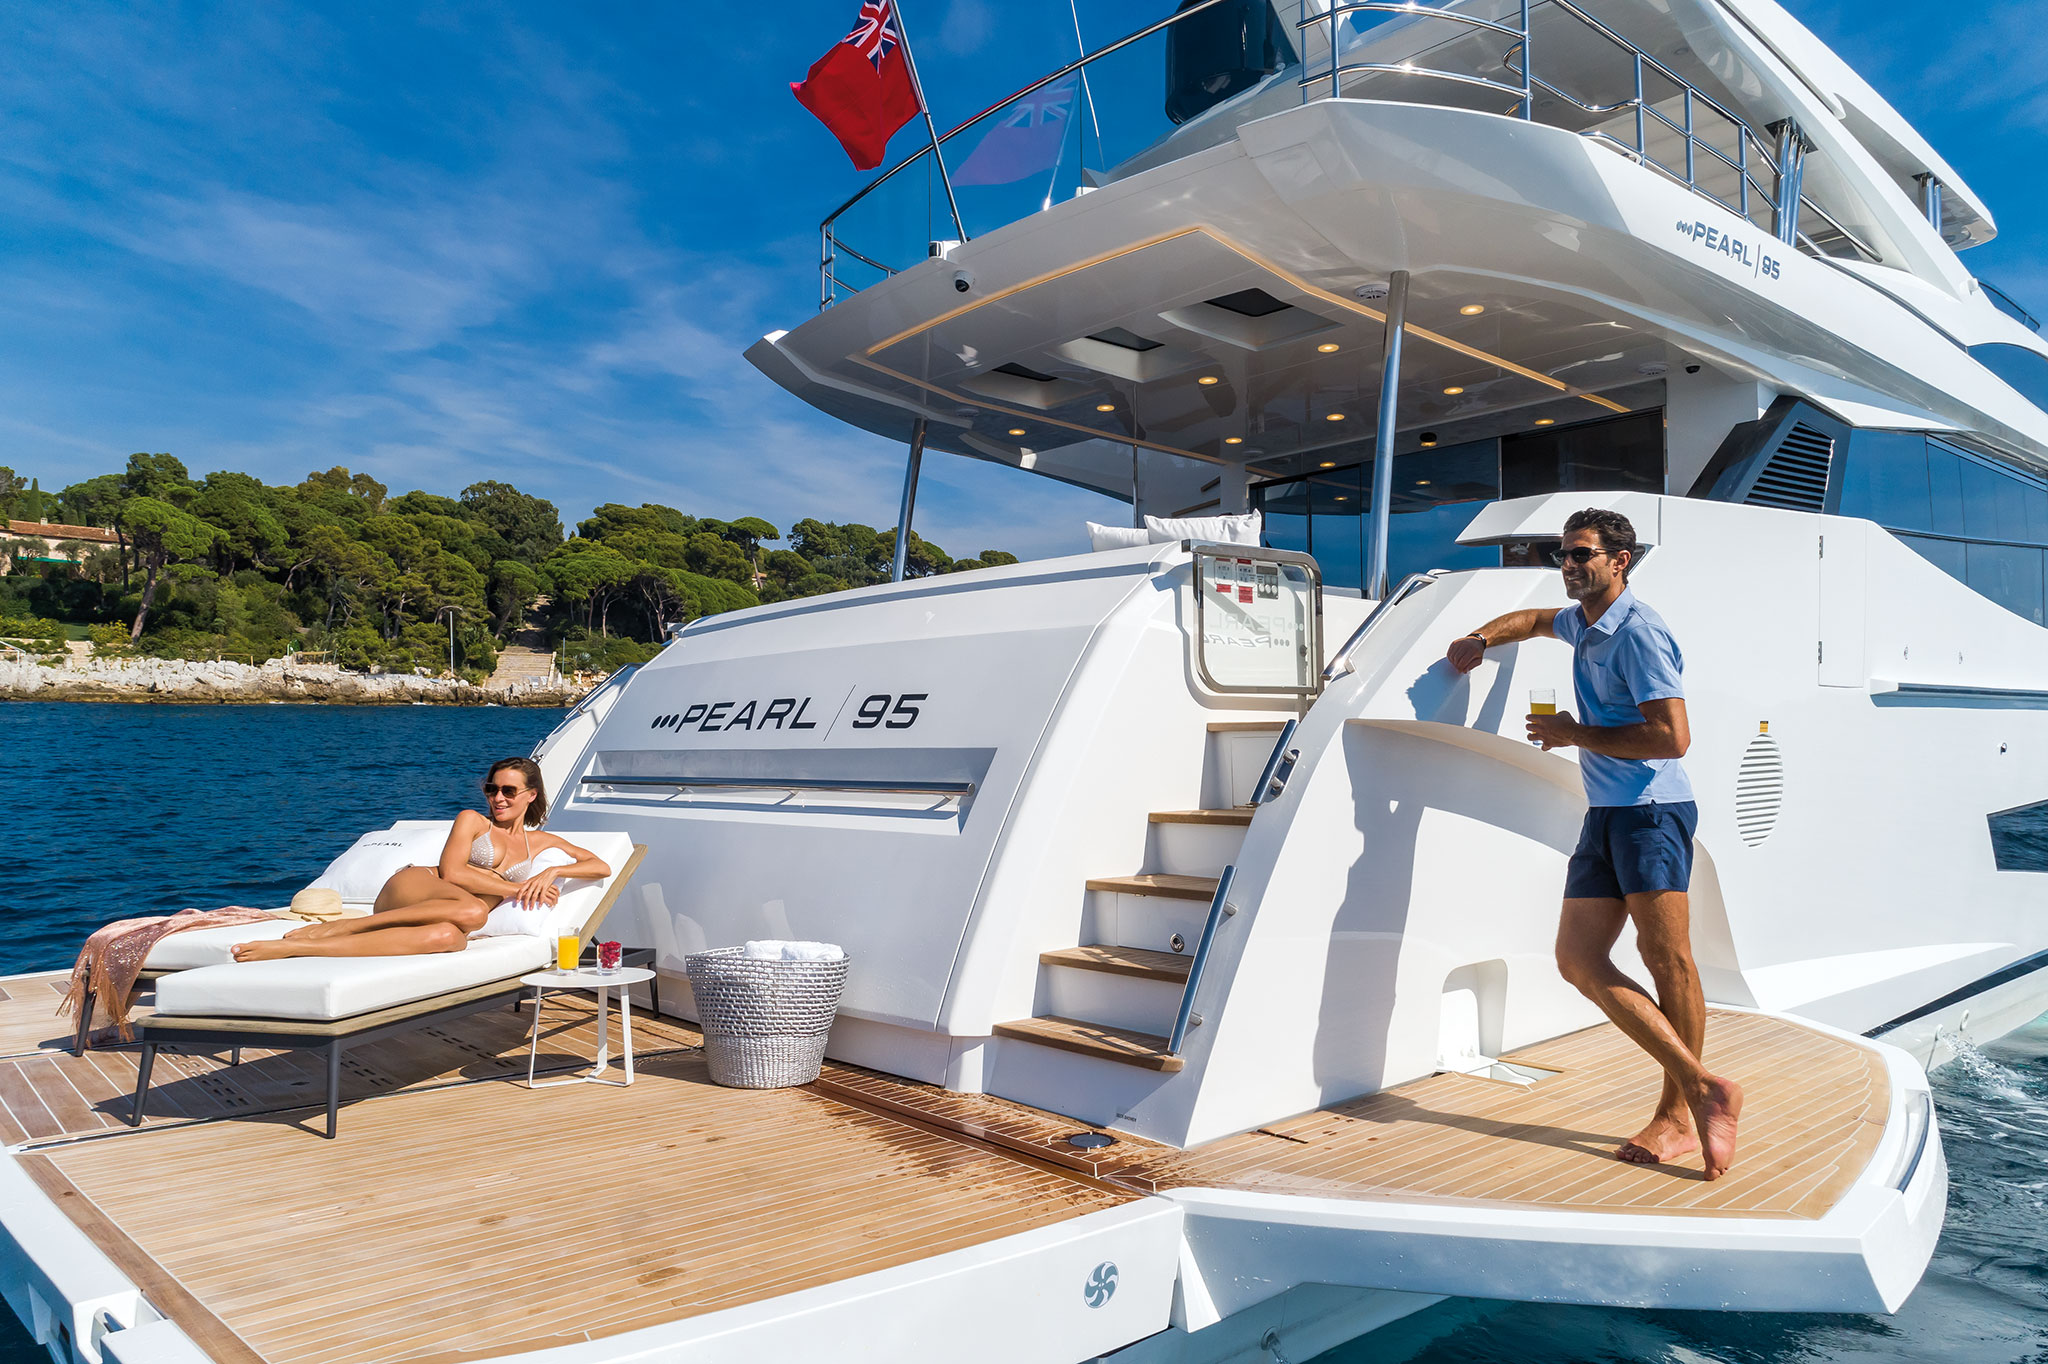 Pearl-95-Lifestyle-yachts-france-170